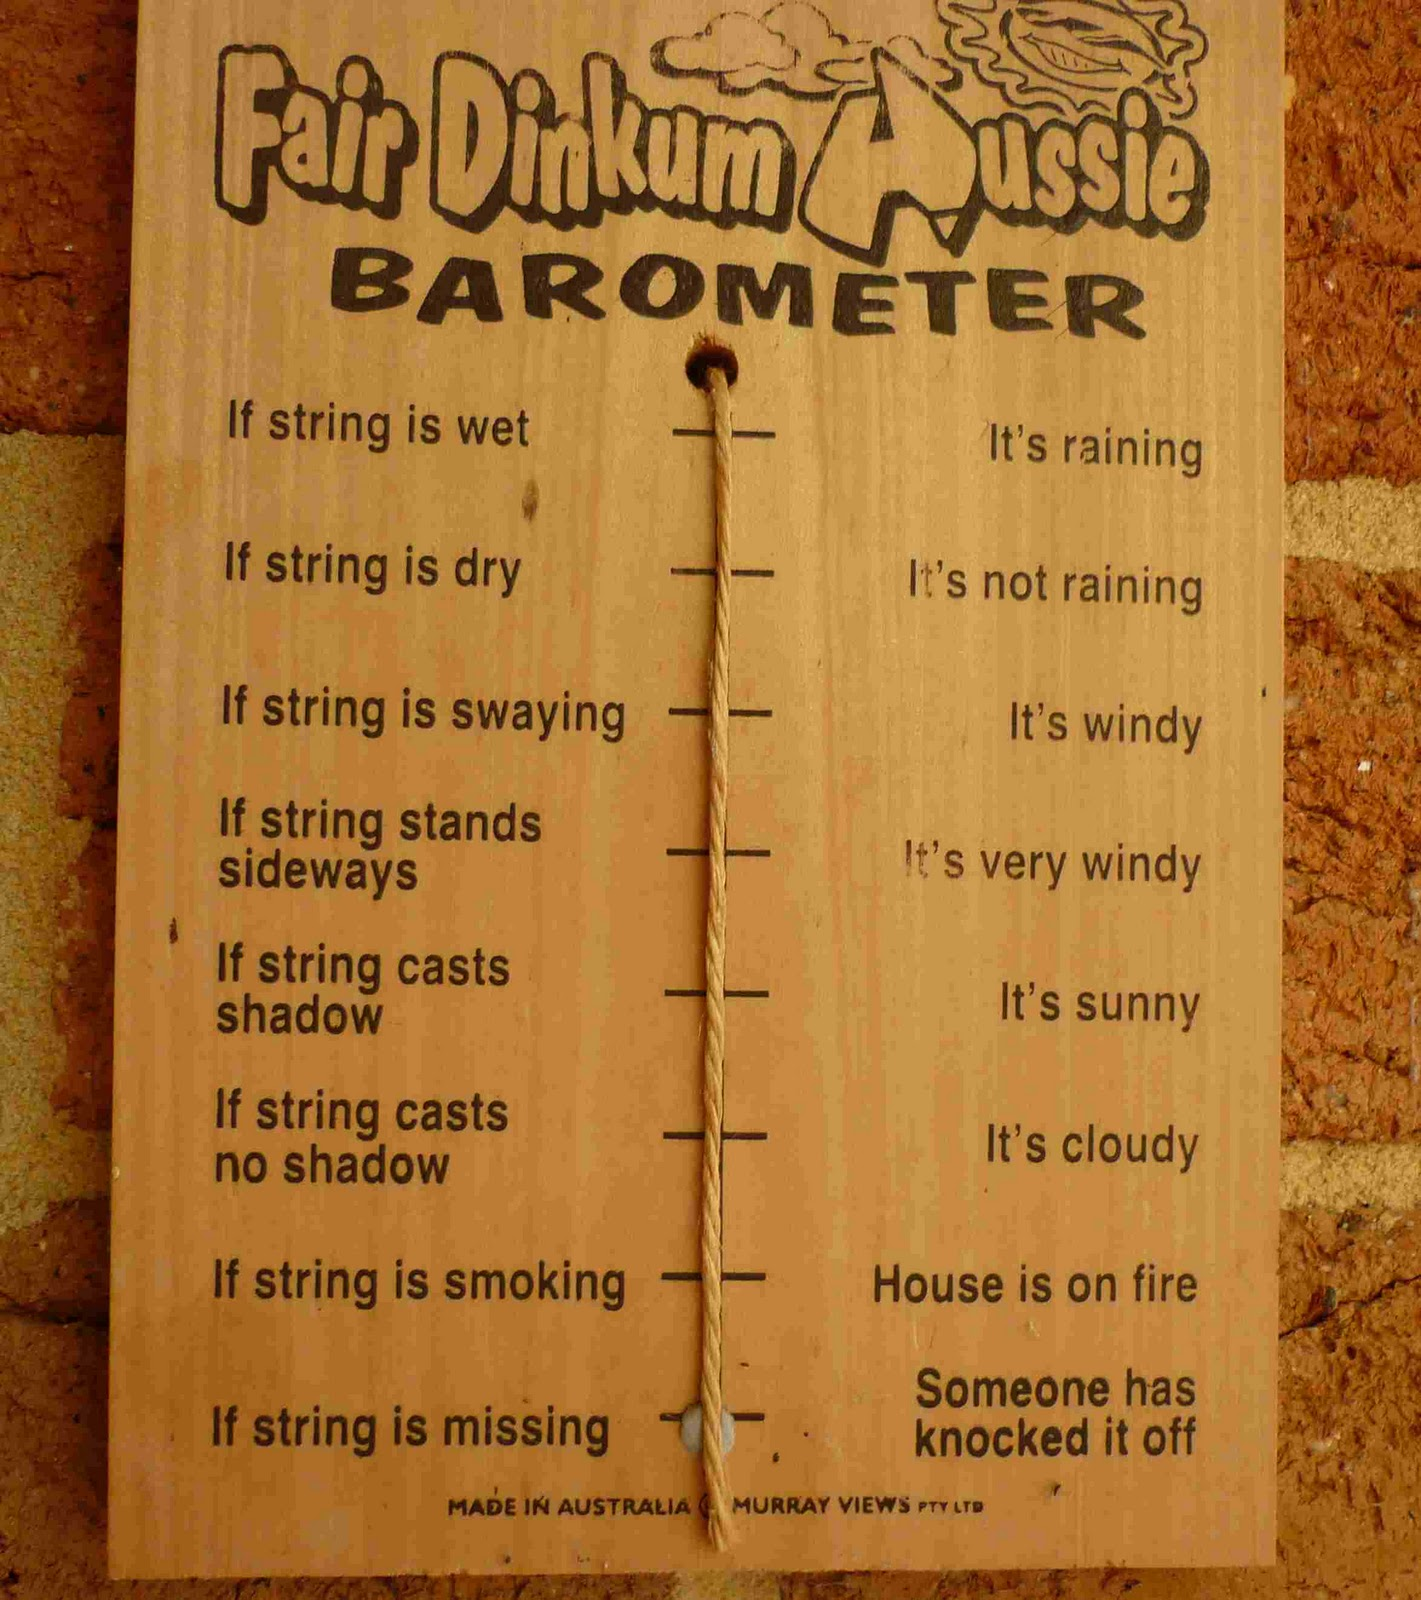 Our Weather Barometer